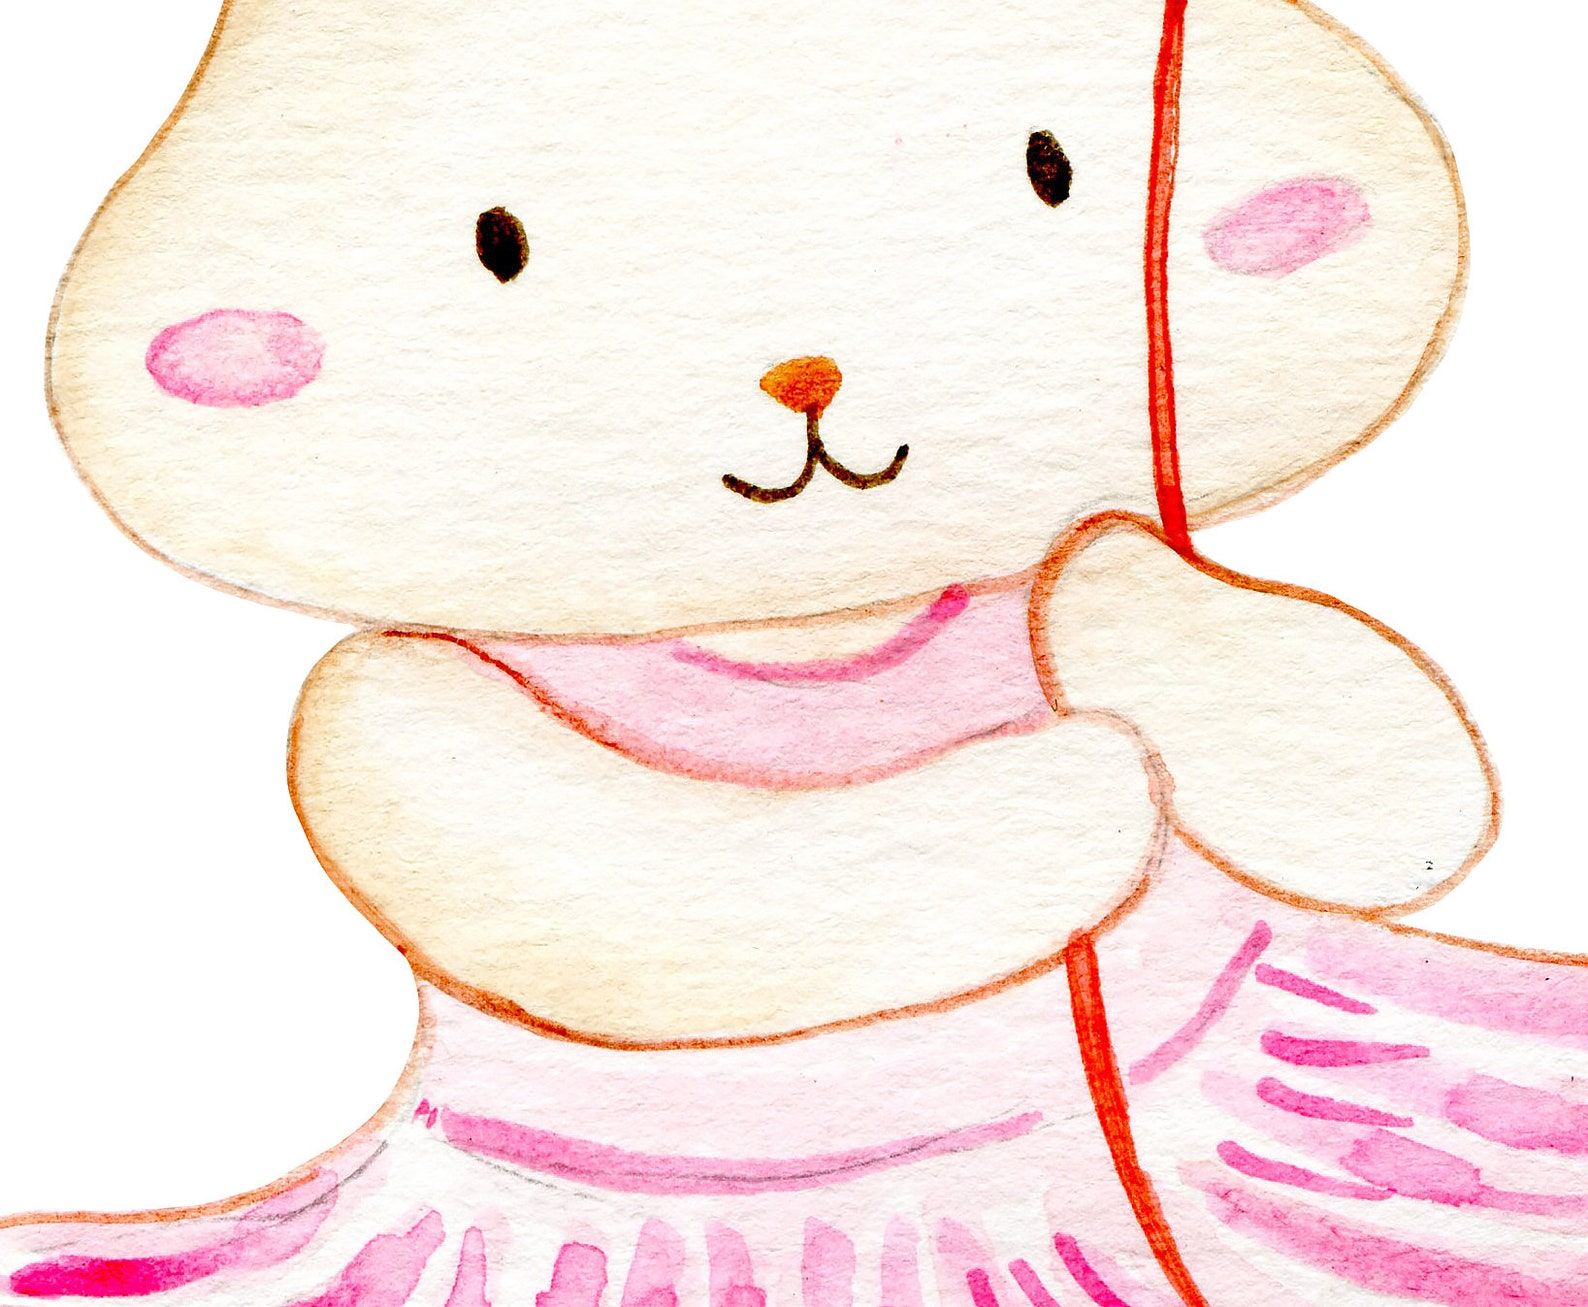 watercolor ballerina bunny for pink ballet dance themed project,